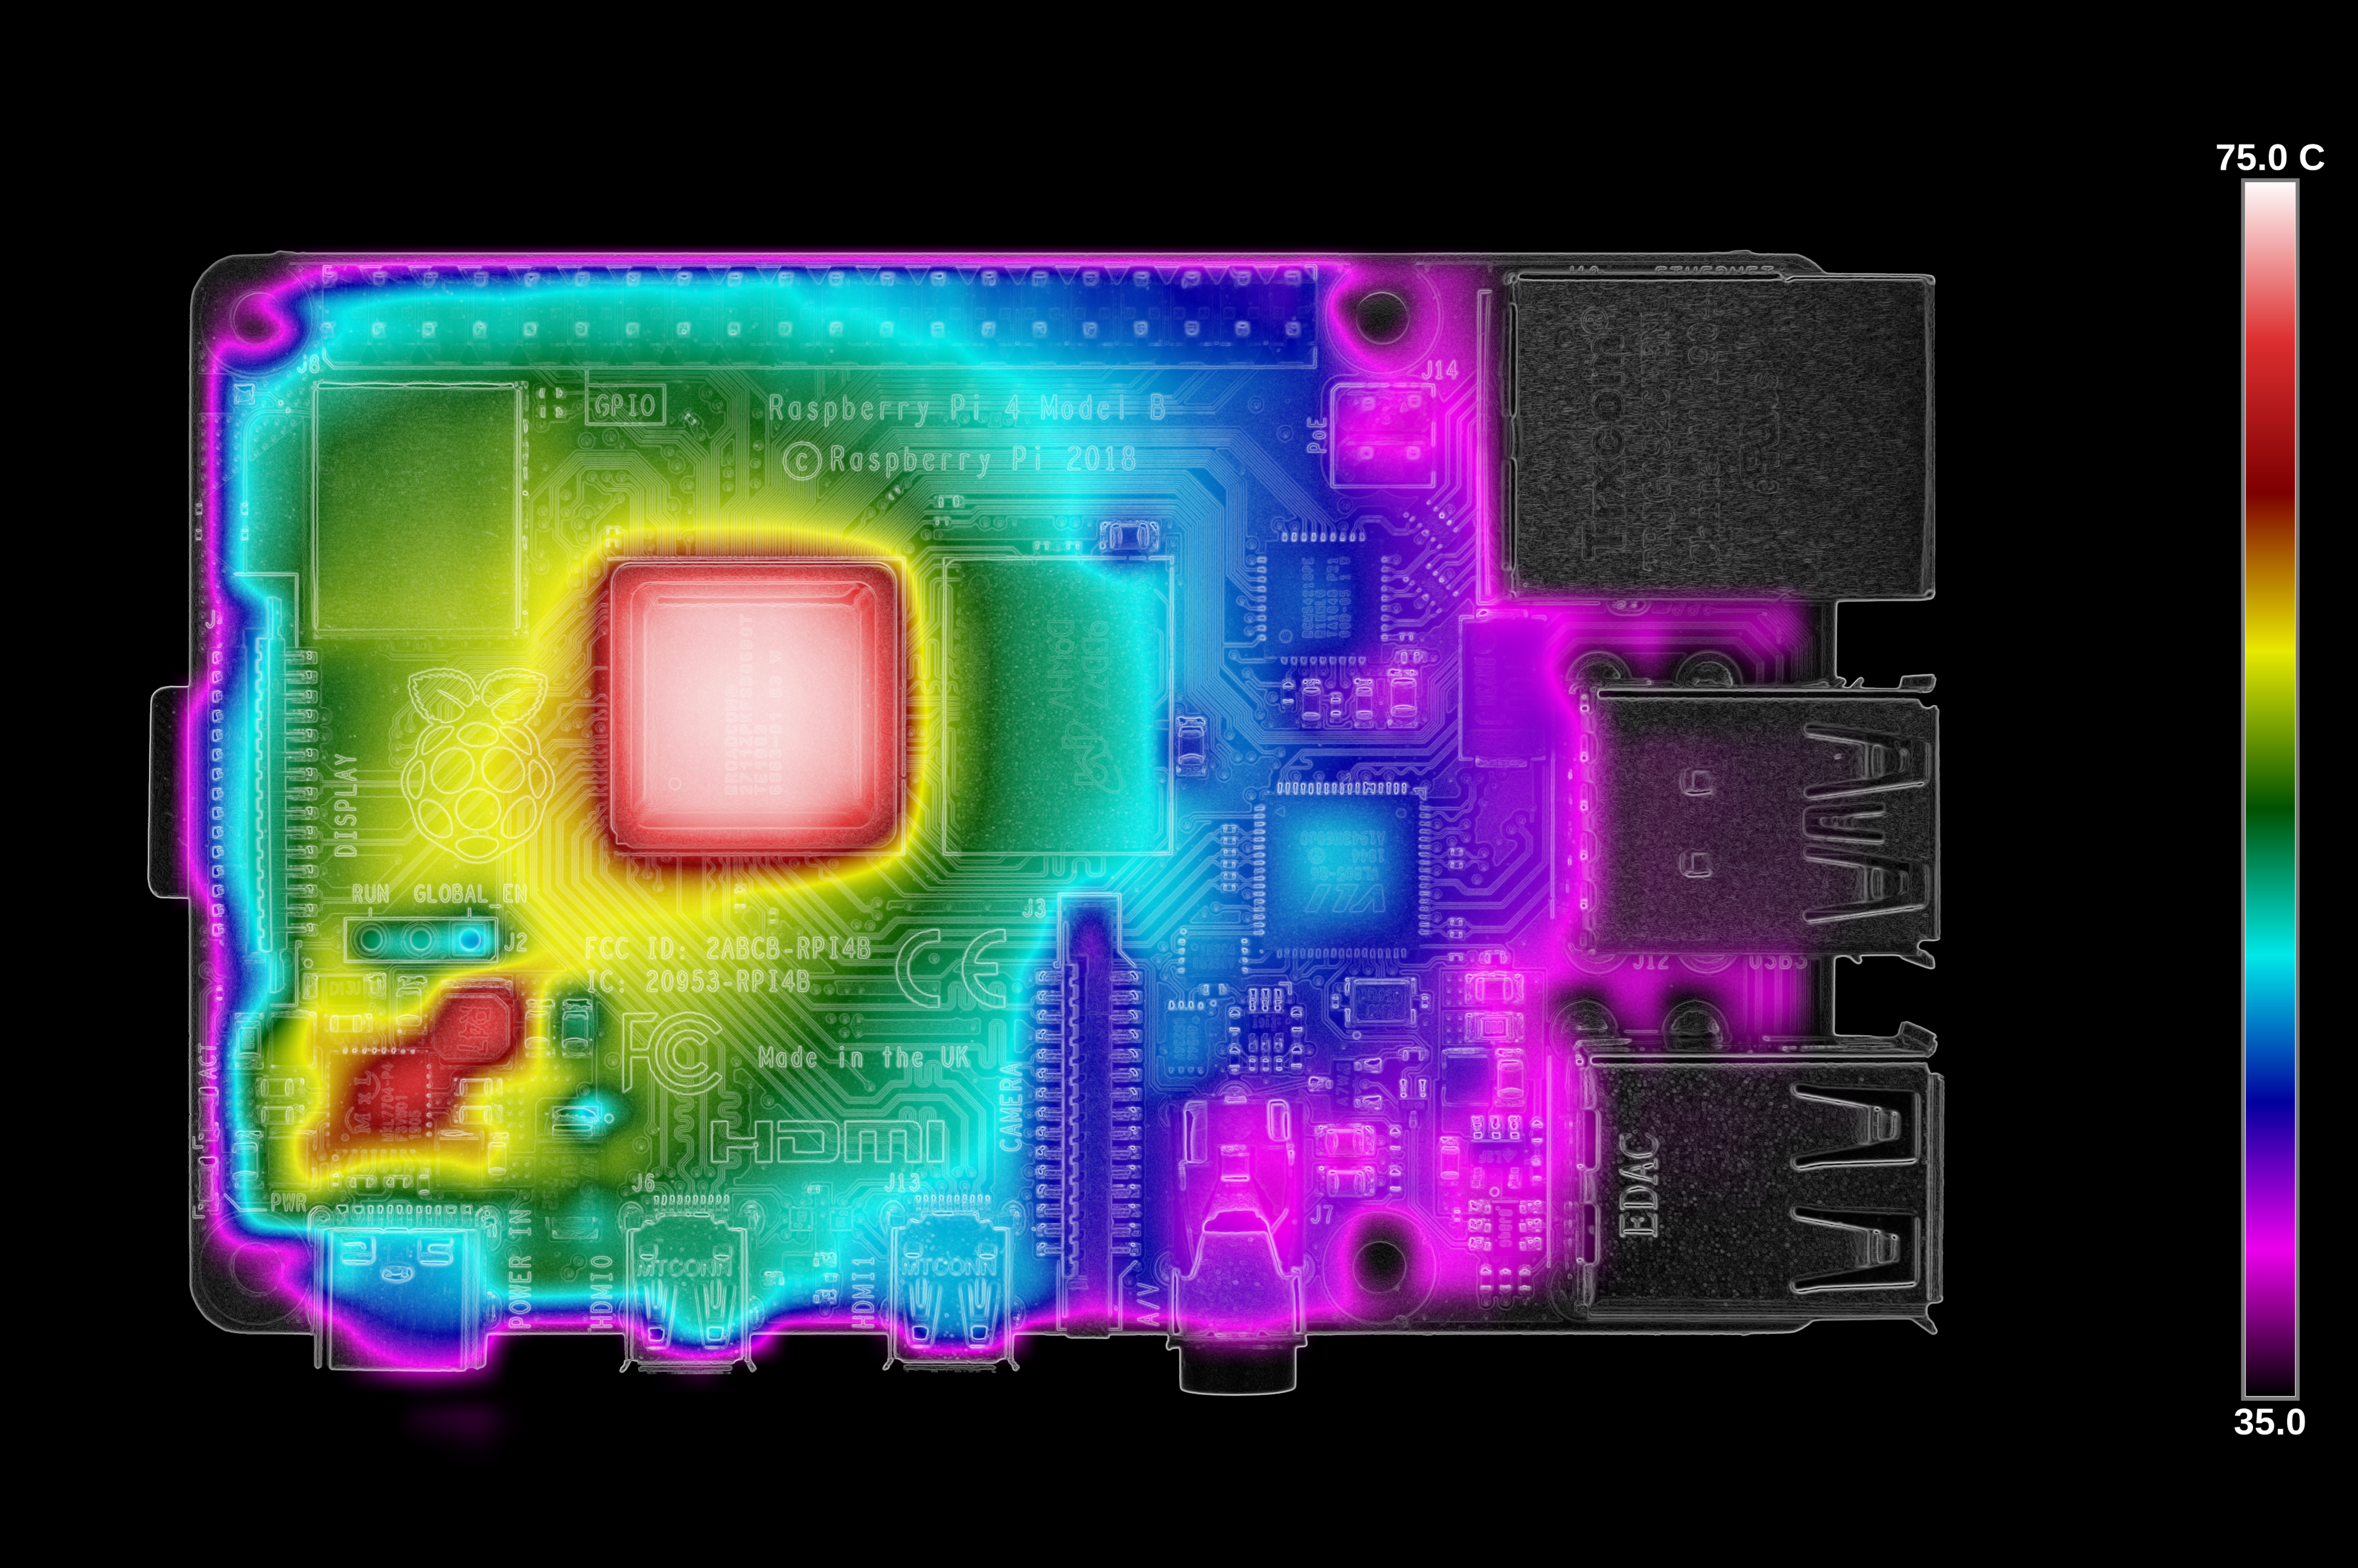 Thermal scan RPi 4